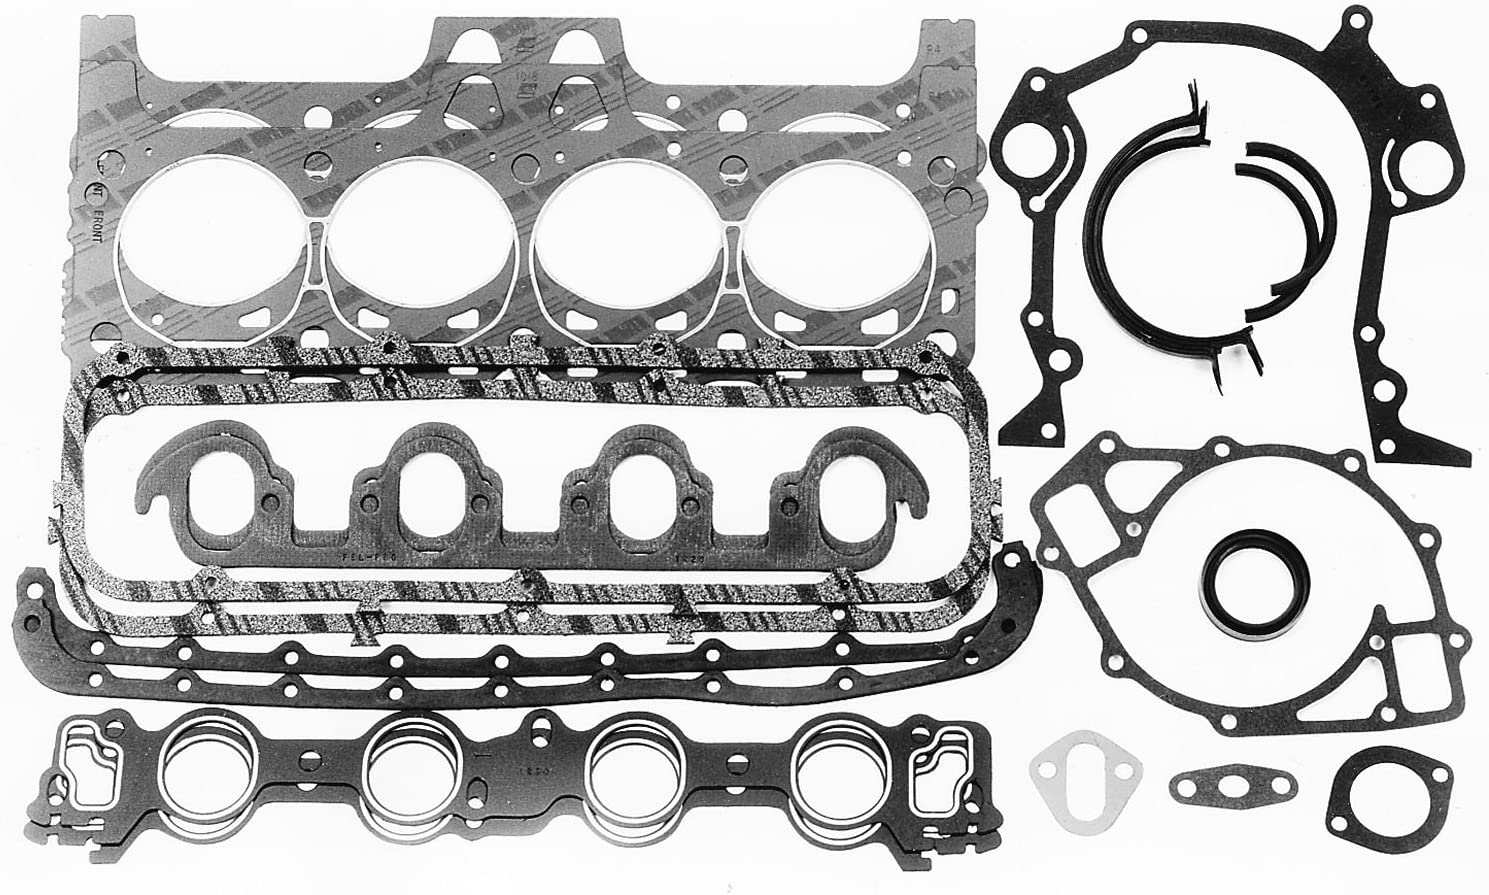 Indefinitely Ford 2021 Racing M-6003-A429 High Performance Gasket Kit